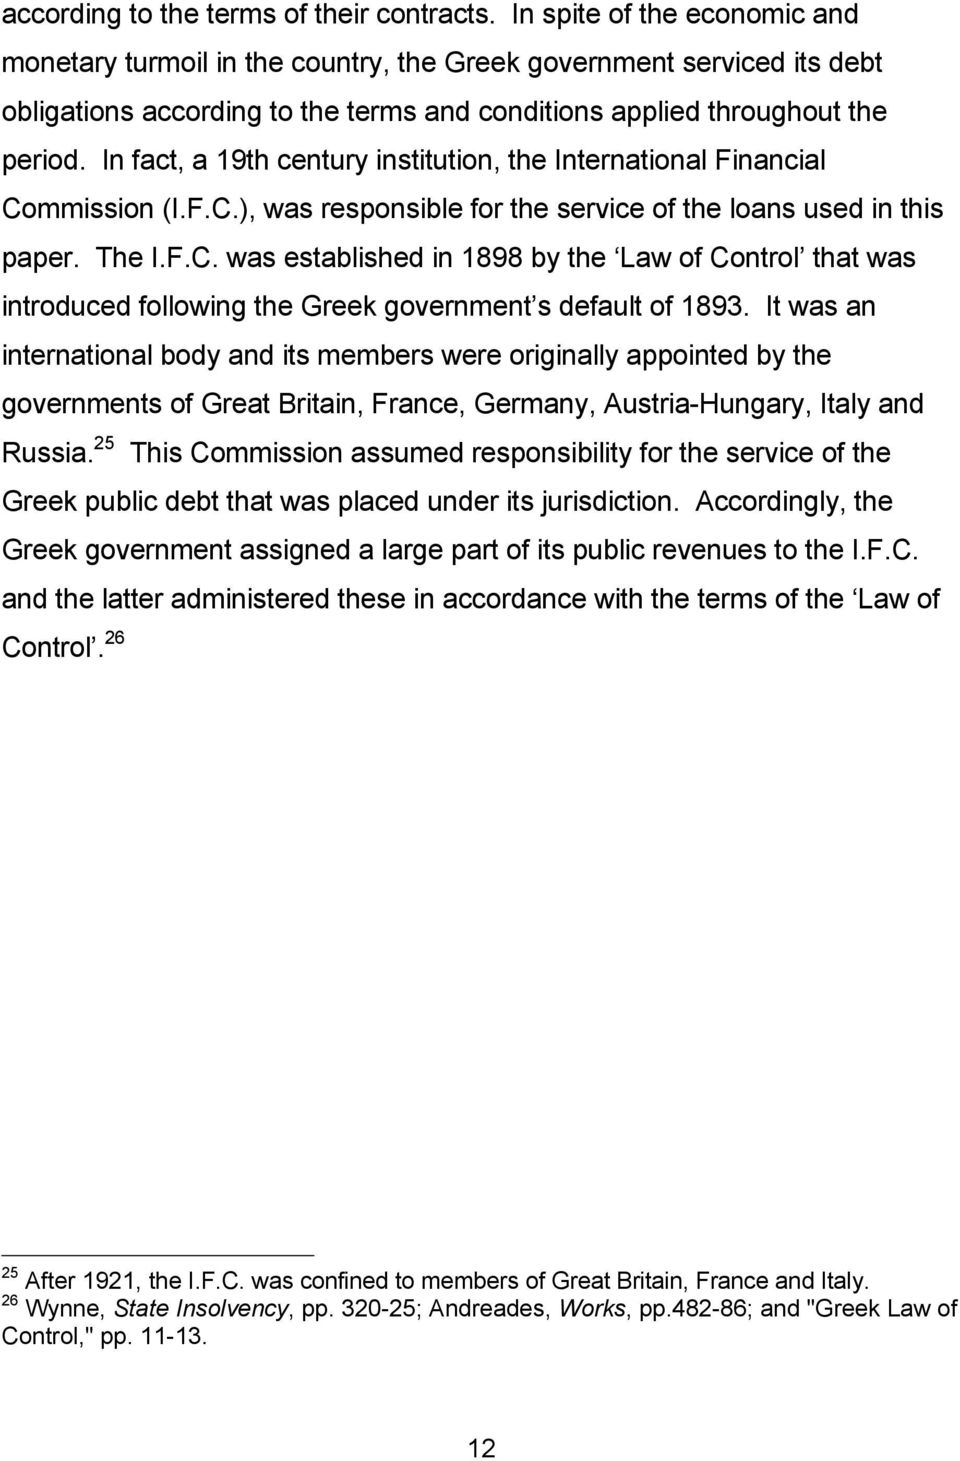 In fact, a 19th century institution, the International Financial Commission (I.F.C.), was responsible for the service of the loans used in this paper. The I.F.C. was established in 1898 by the Law of Control that was introduced following the Greek government s default of 1893.